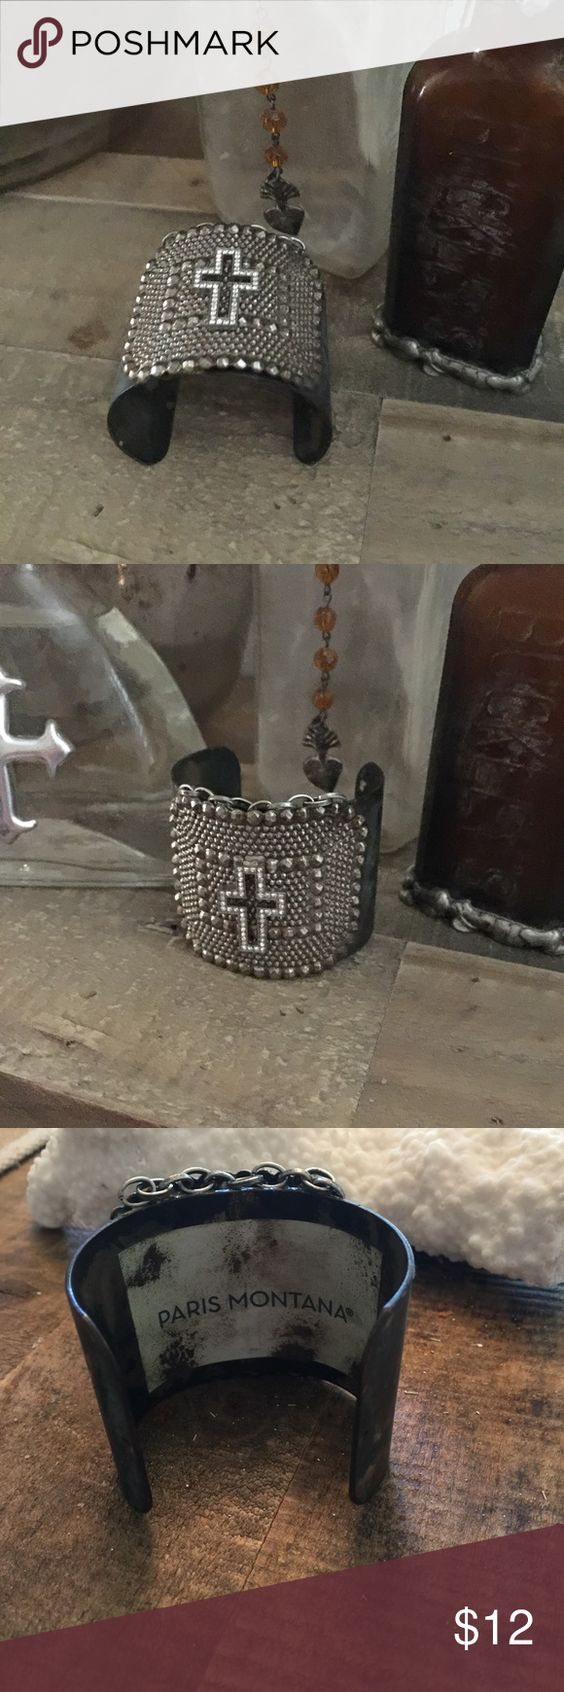 Paris Montana cross cuff bracelet Rustic metal cross cuff bracelet.  Adjustable. Not sure of the metals used hand made. Jewelry Bracelets